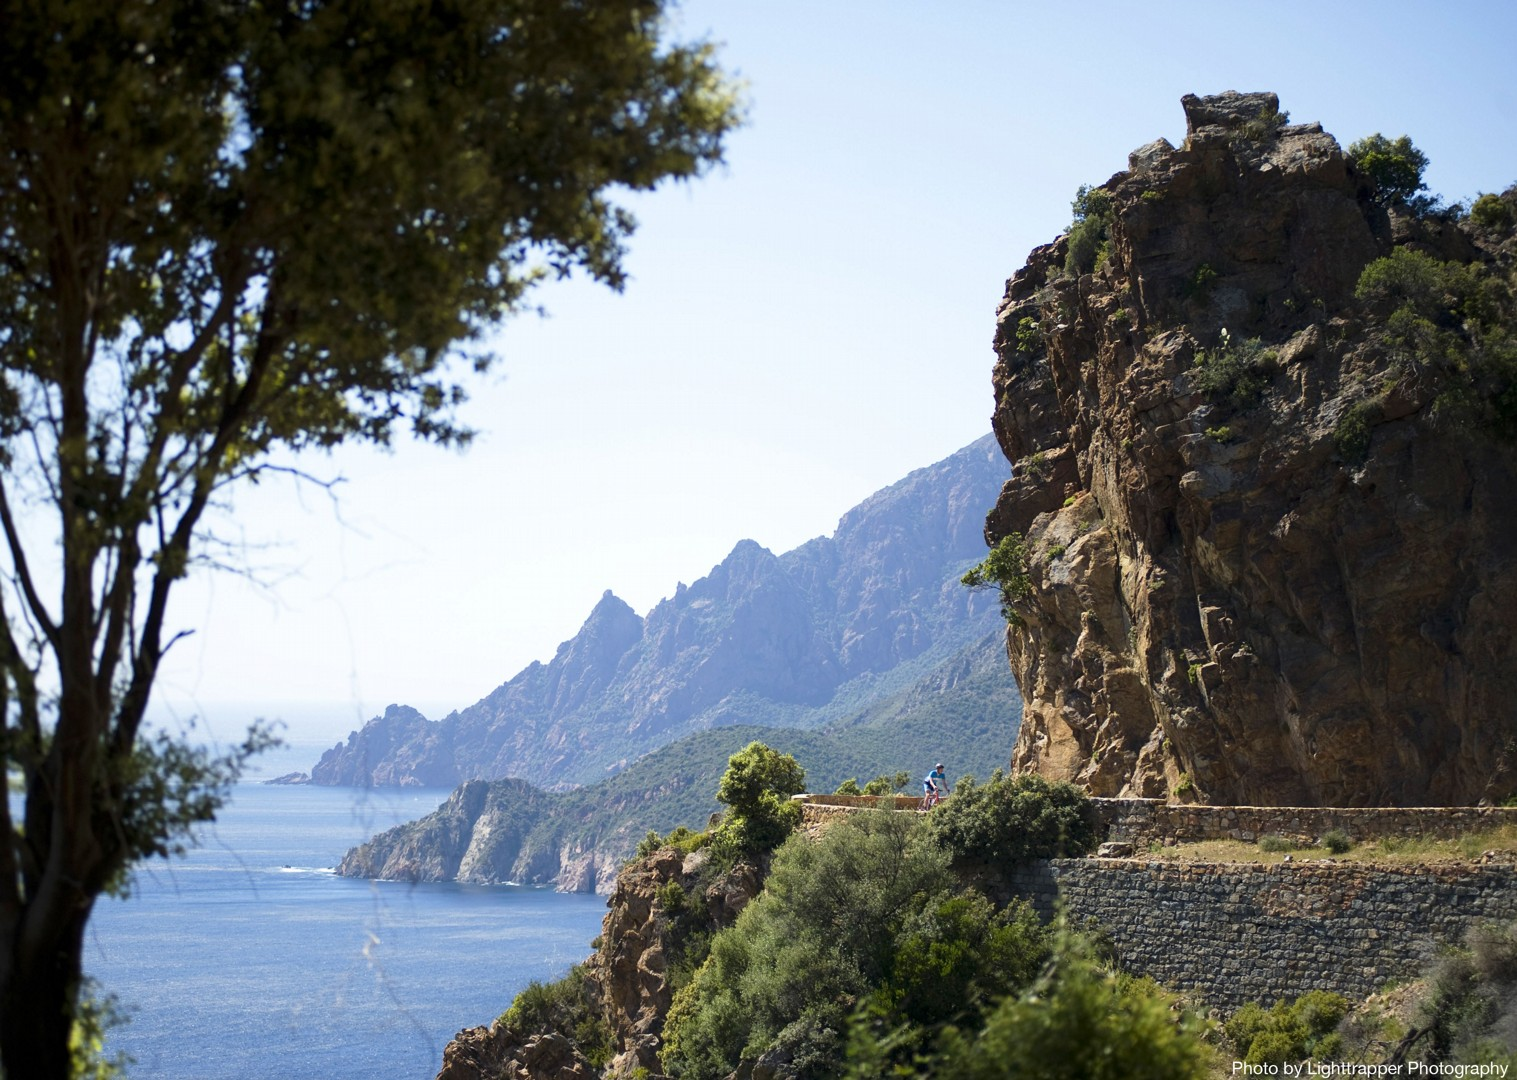 corsica-guided-road-cycling-holiday-the-beautiful-isle-mediterranean.jpg - France - Corsica - The Beautiful Isle - Guided Road Cycling Holiday - Road Cycling